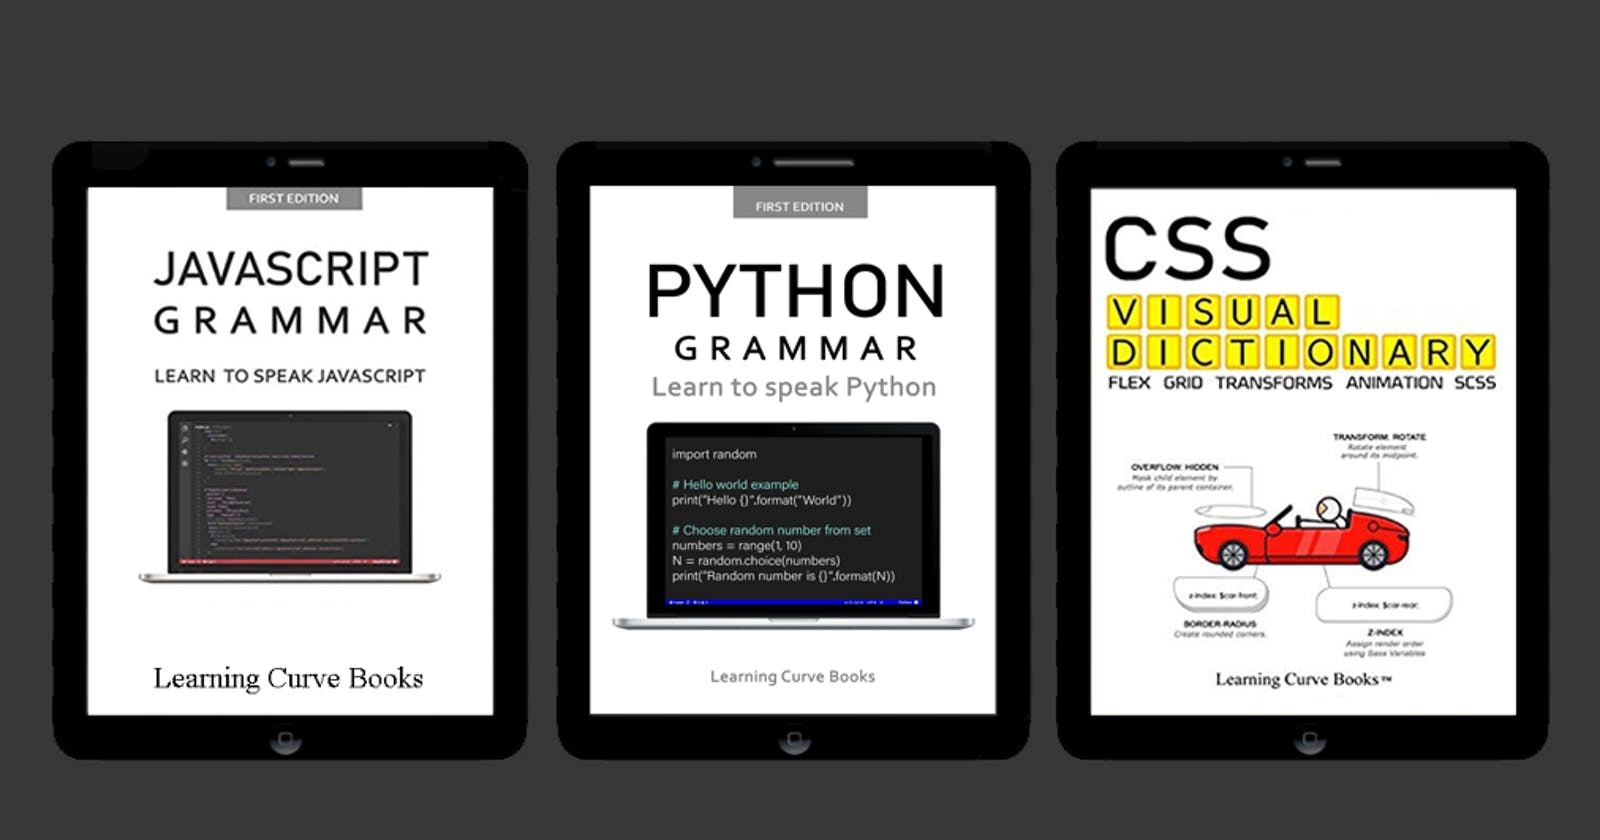 Reminder 🎗 I decreased price for my coding book bundle for India, Nigeria, Mexico & few others.